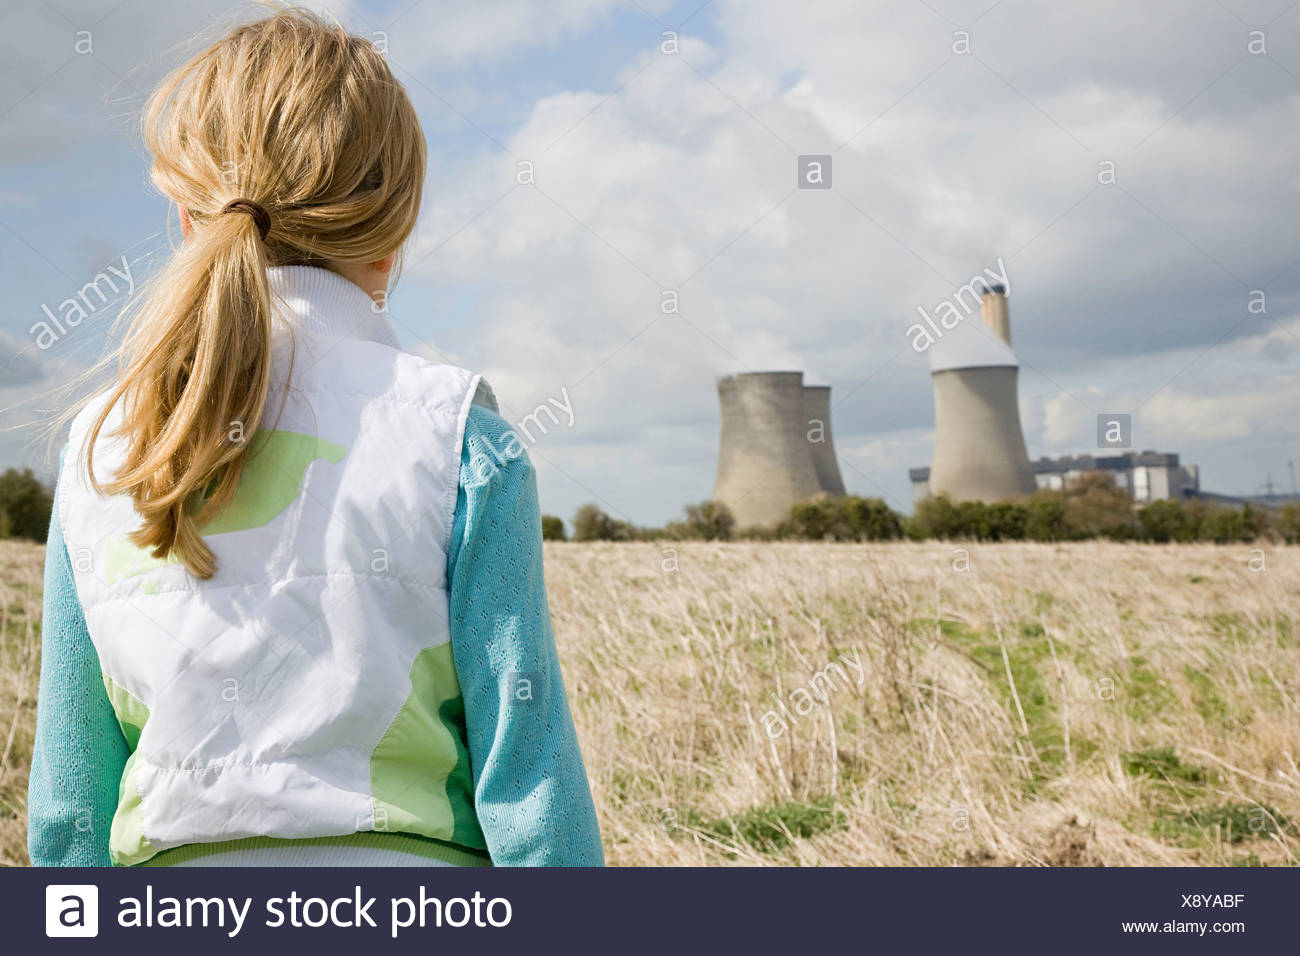 Girl by power station - Stock Image